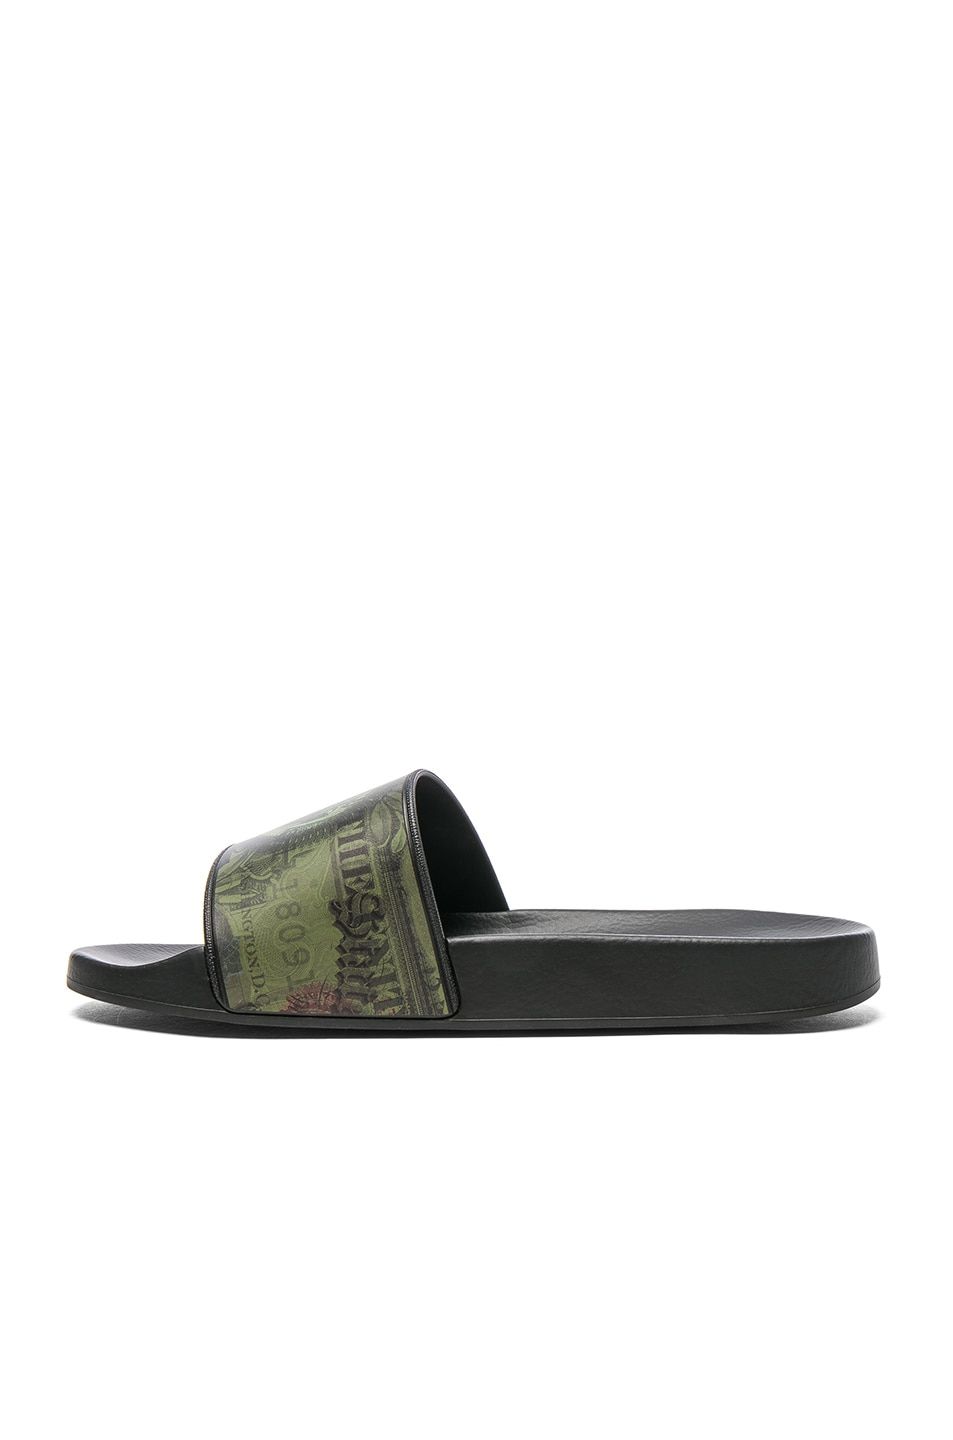 24c6555b5f18 Image 5 of Givenchy Slide Sandals in Multi